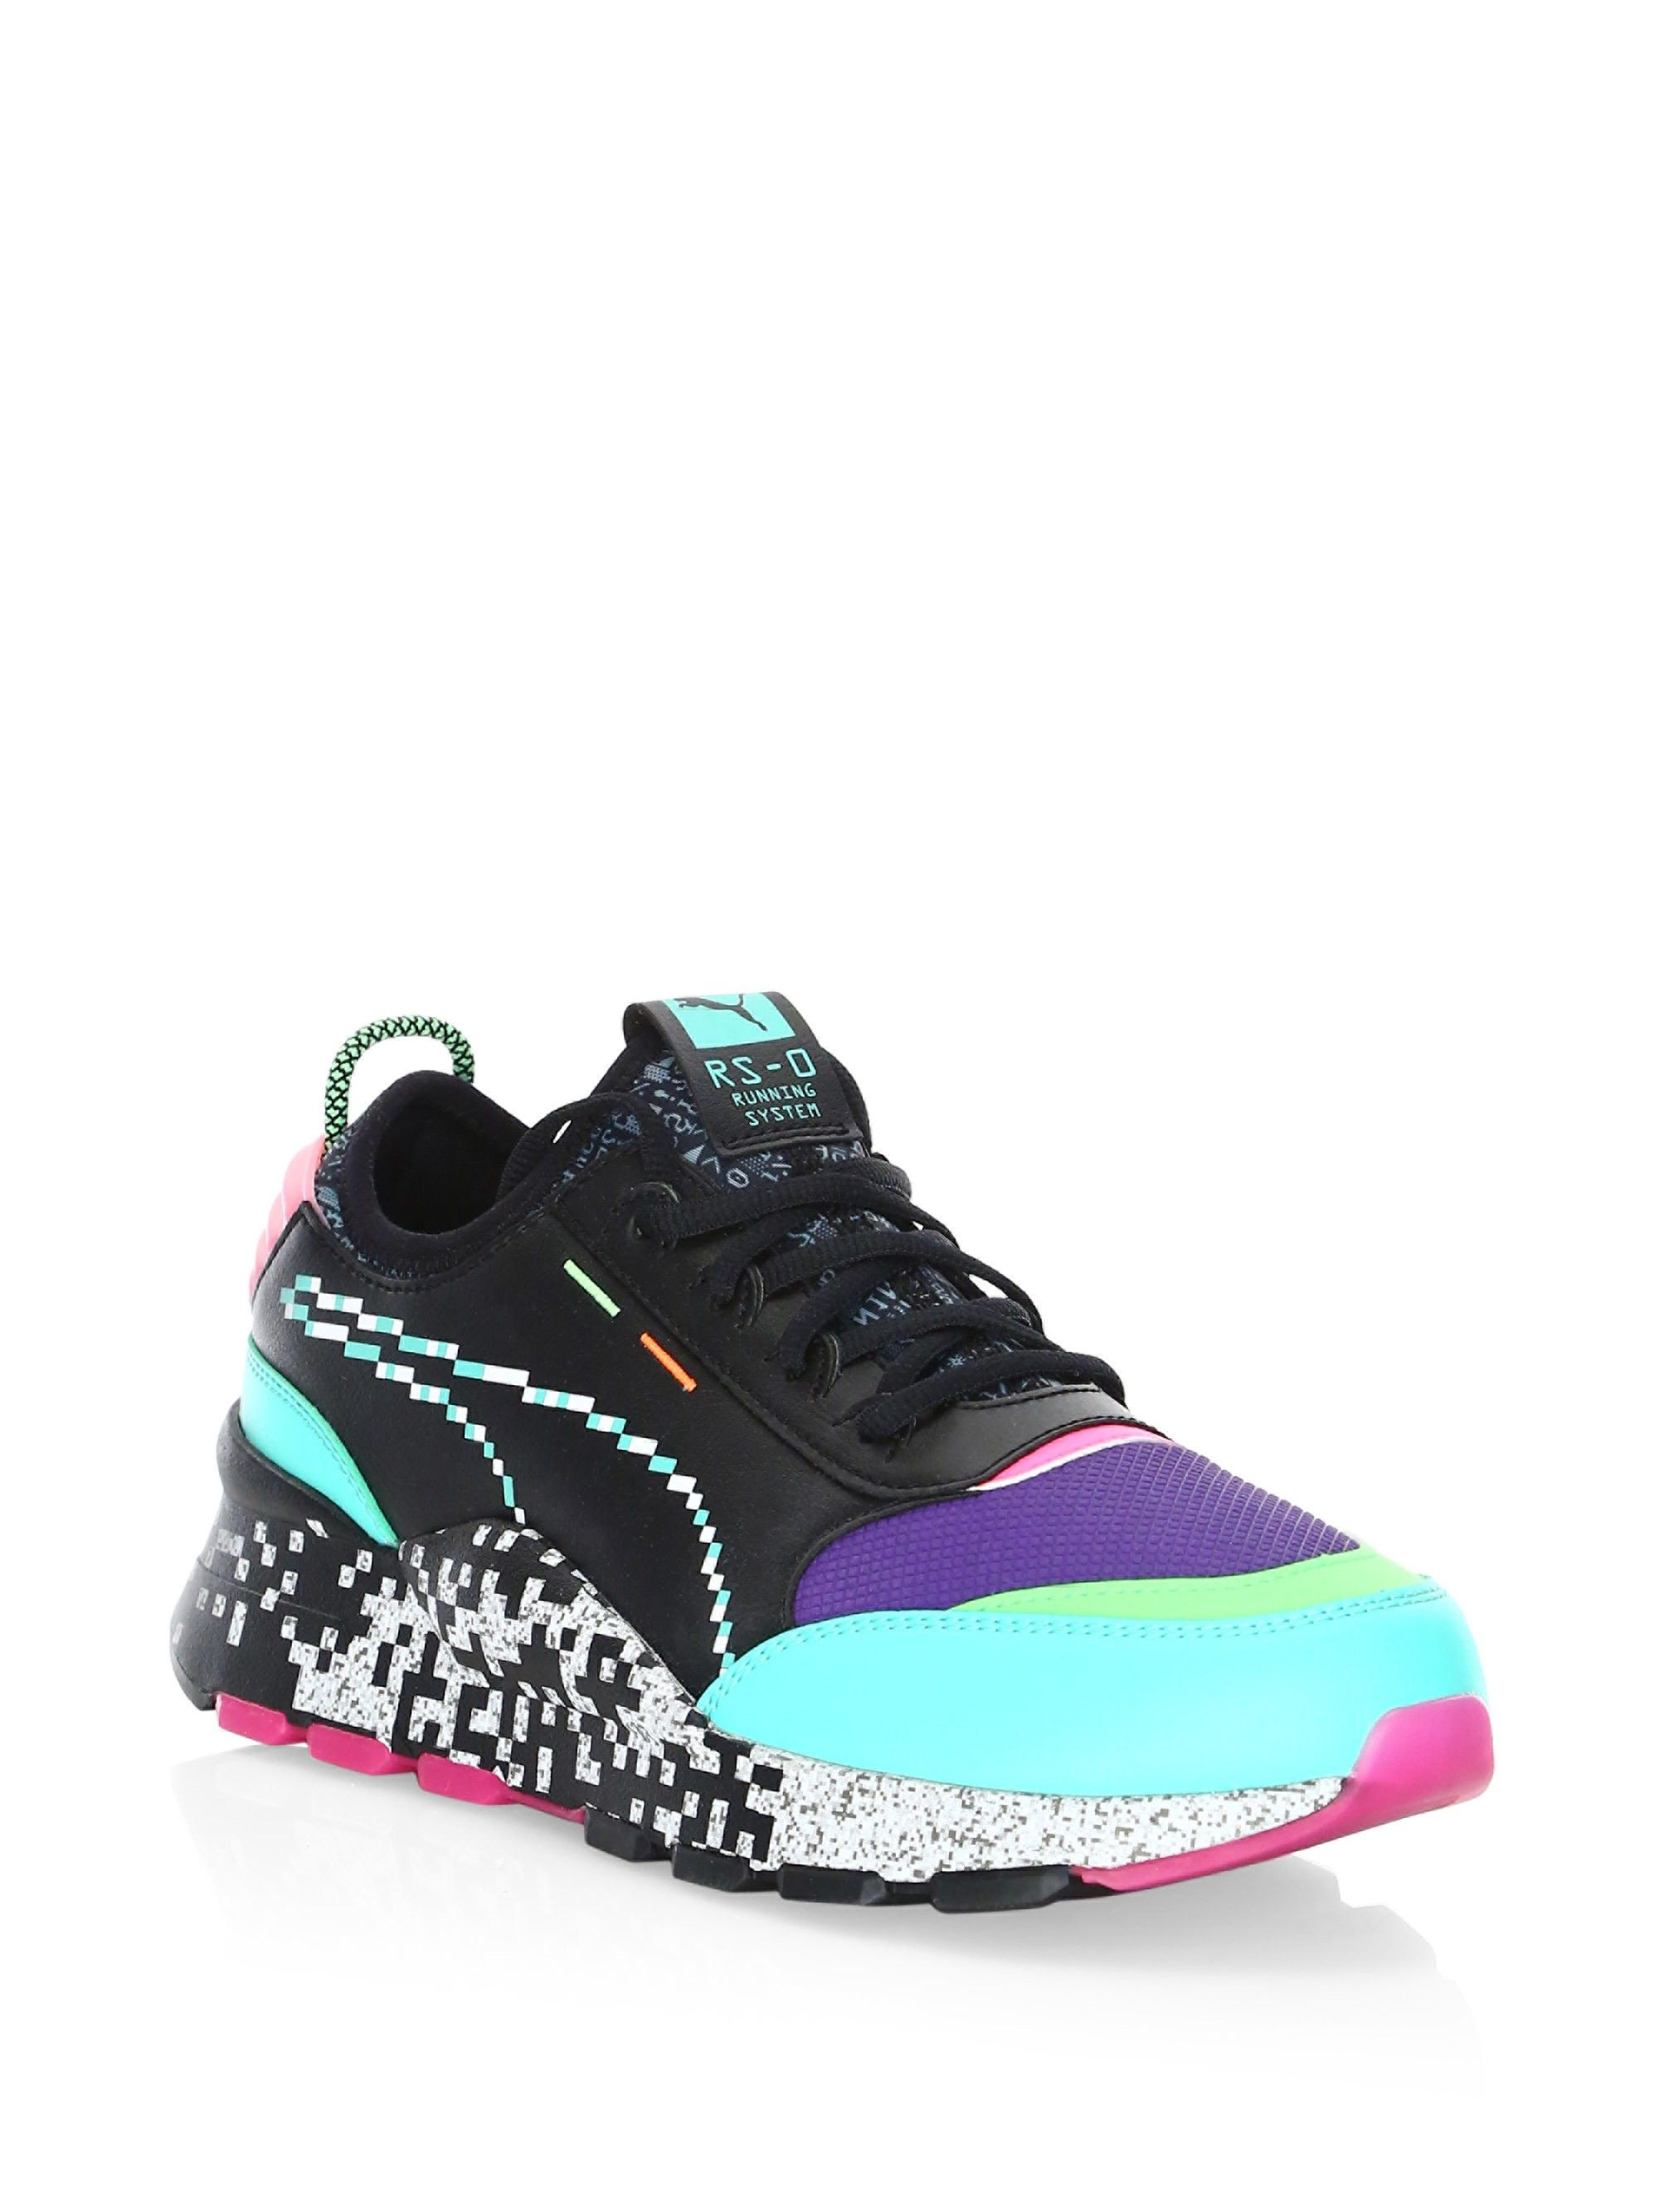 9c953f46023 Puma Rs-0 Game Error Sneakers - Black Green Pink 10.5